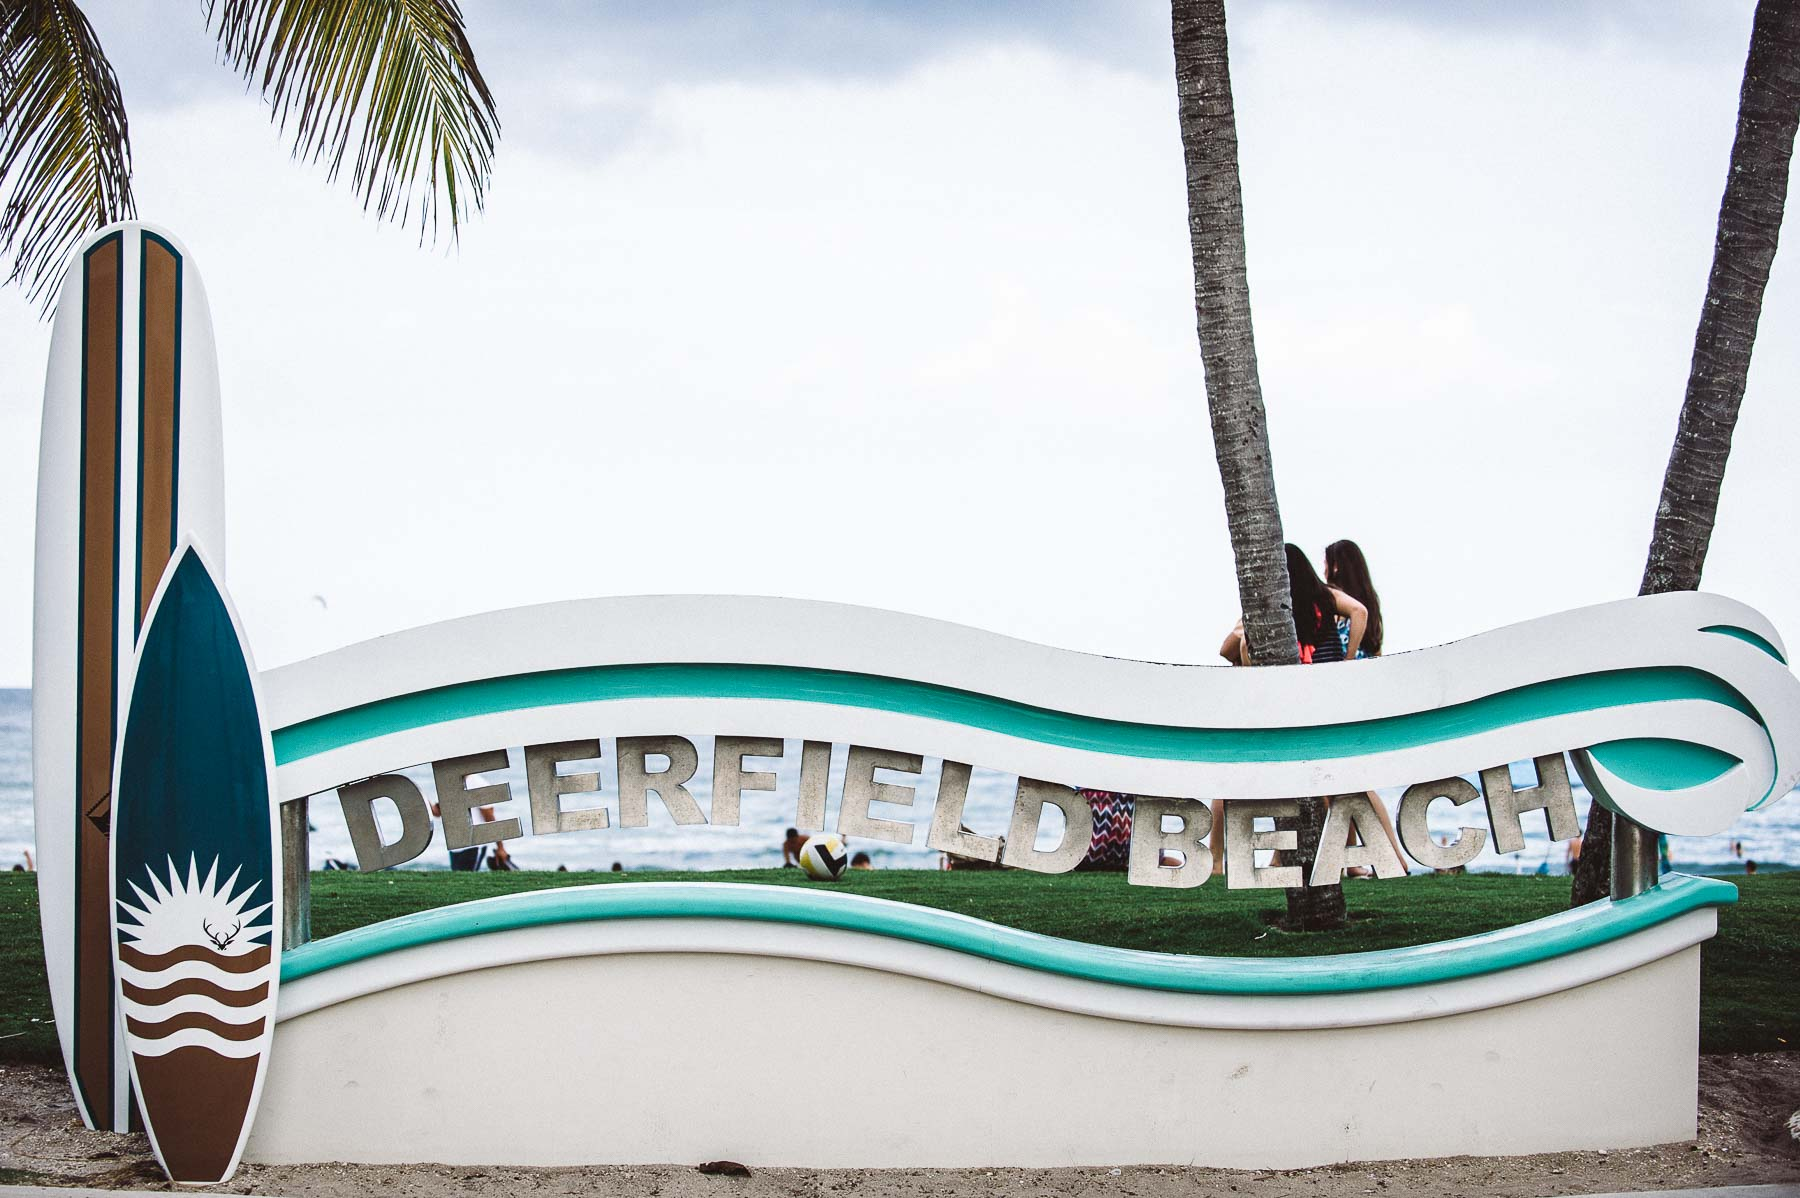 The Royal Blues Hotel's unbeatable location: just in front of the Deerfield Beach sign and popular pier.